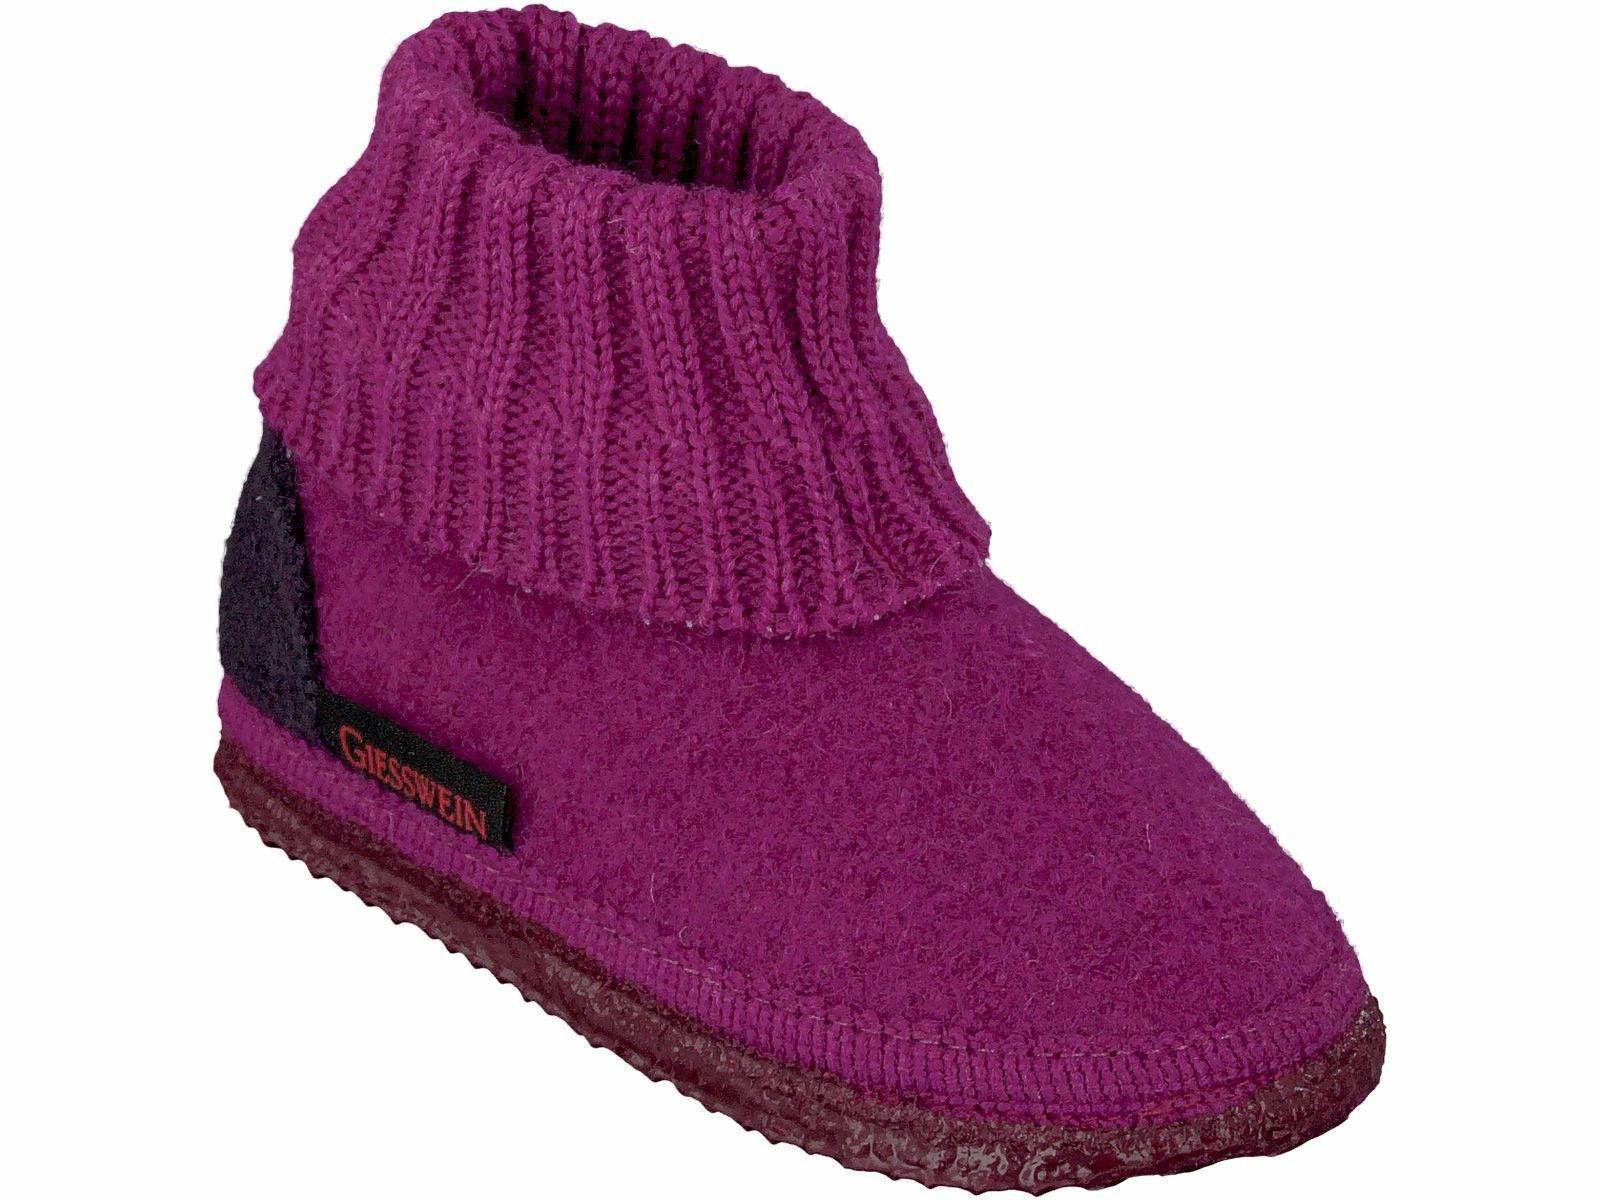 Chauds Cabanes Chaussures Taille 27 - 35 Giesswein Kramsach Pantoufles Baie Lavable Rouge